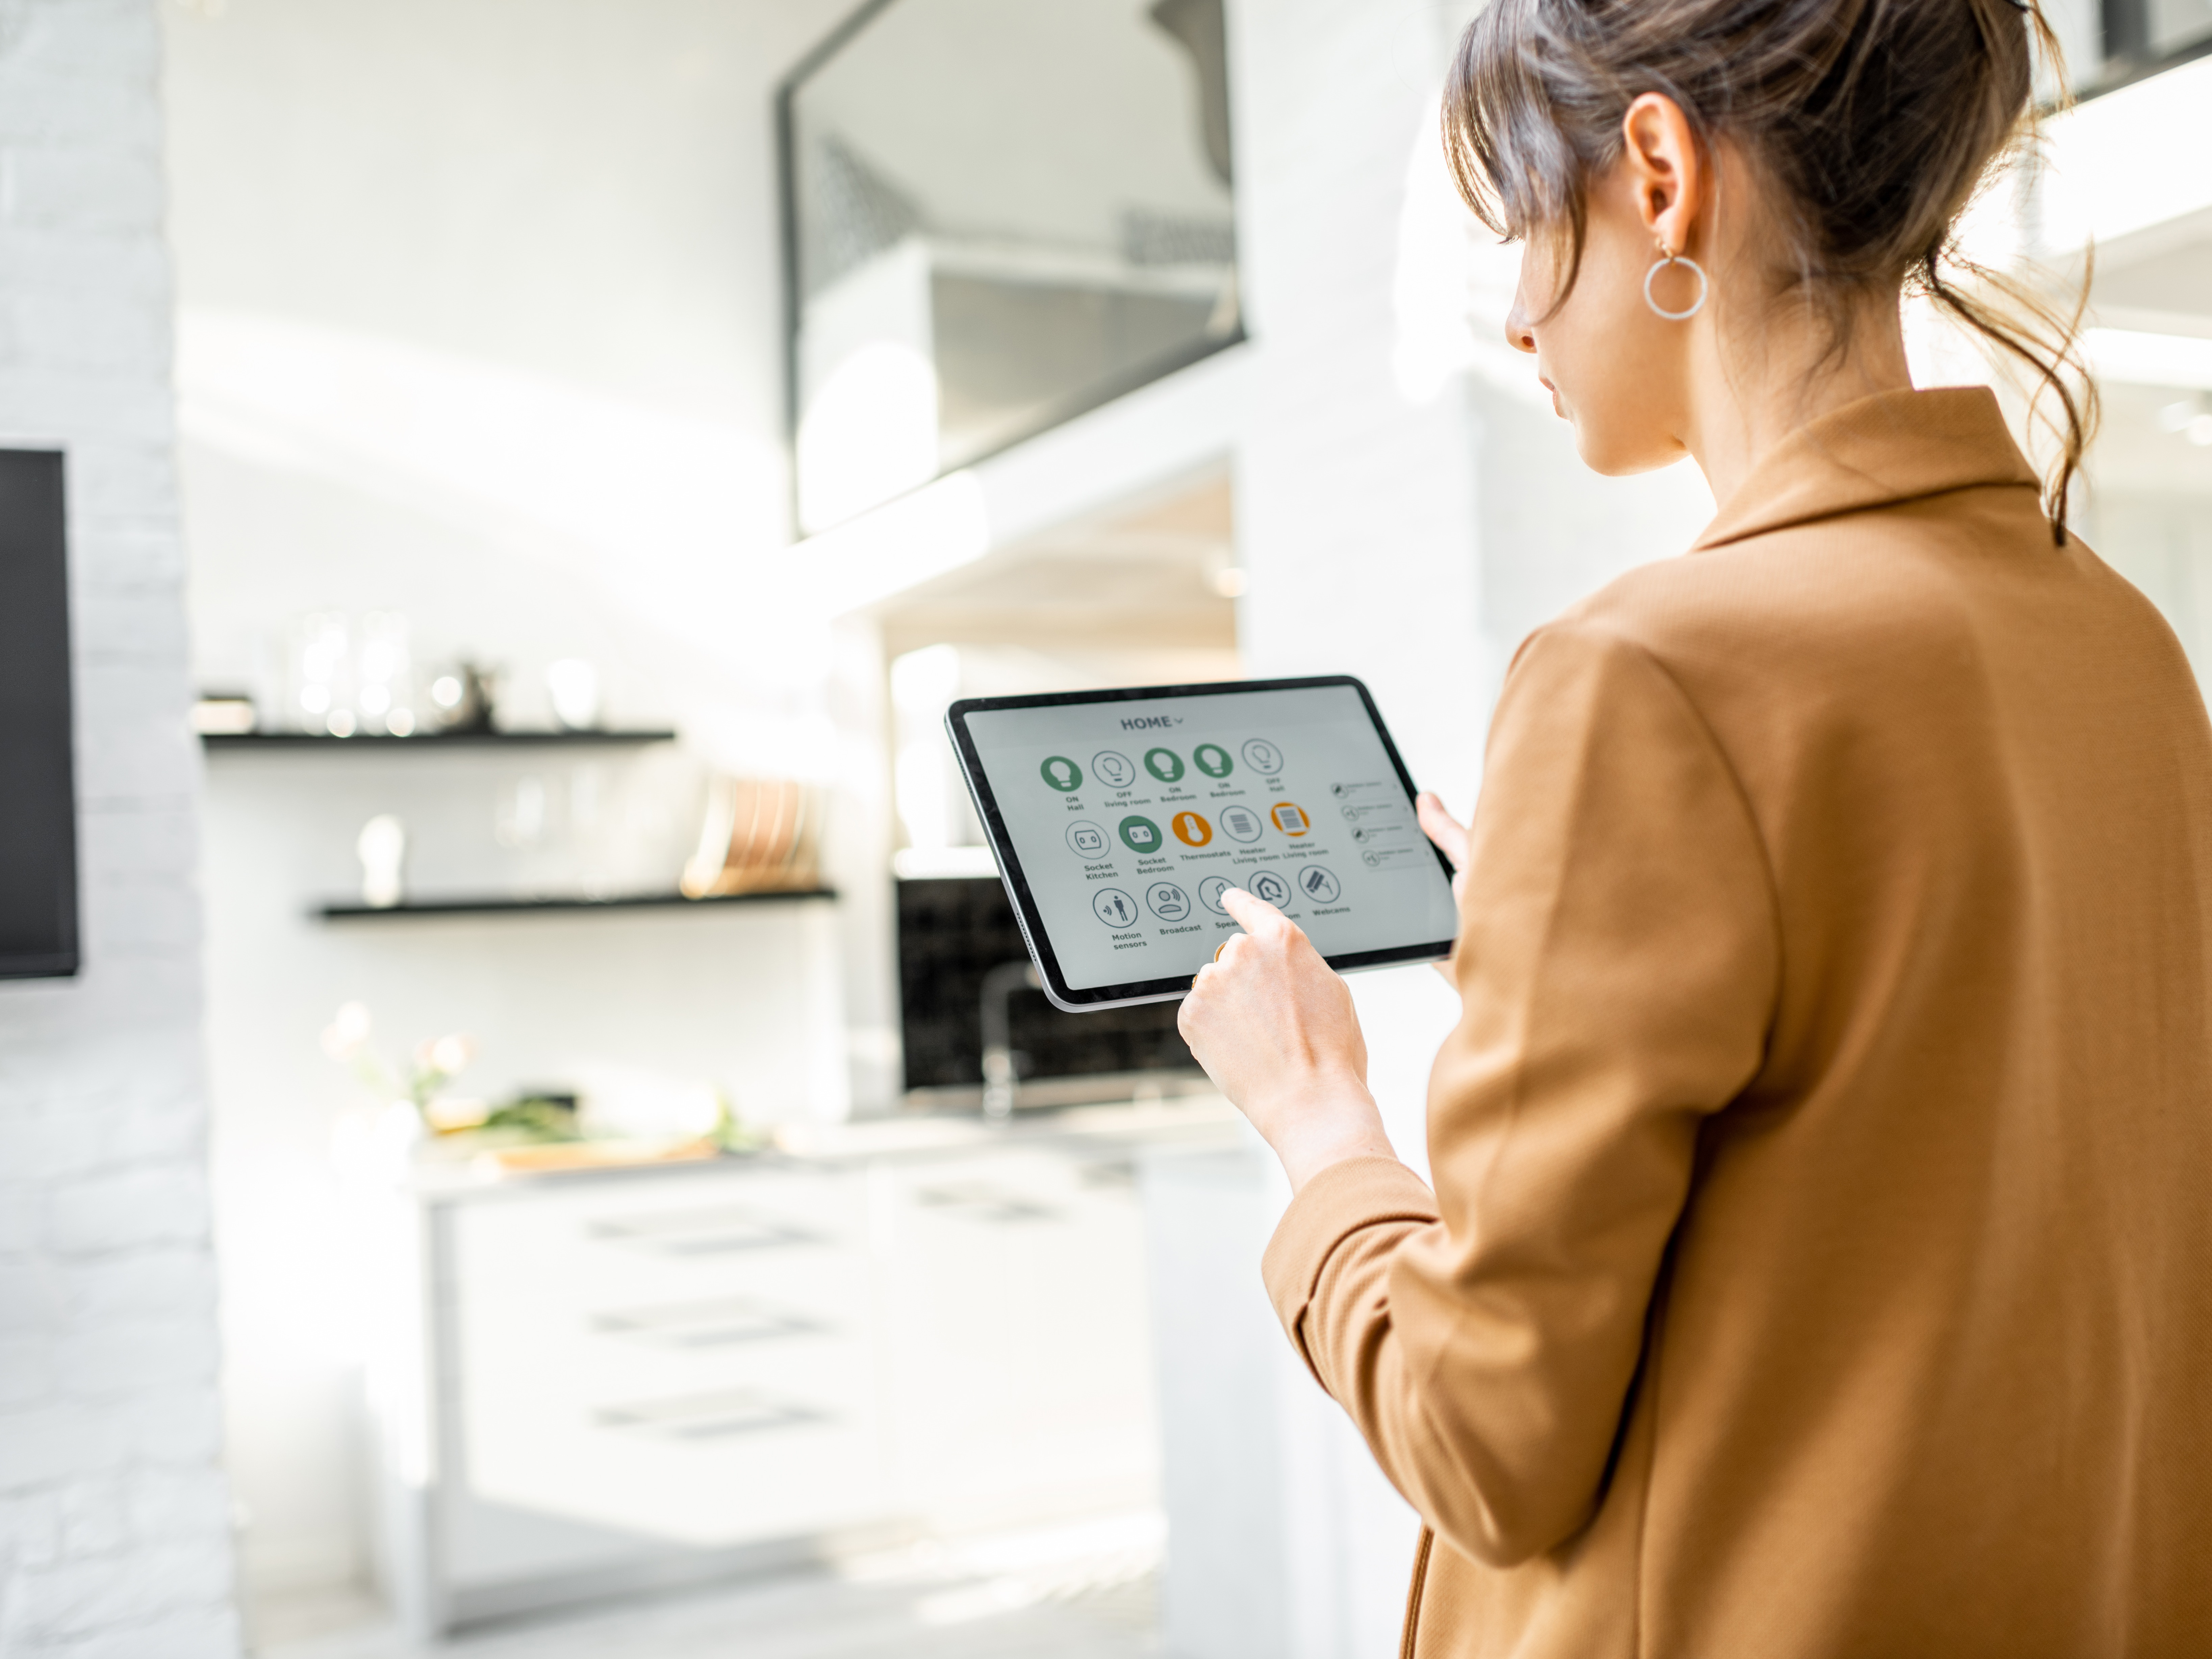 Woman standing in her home using an app on her tablet to operate home appliances